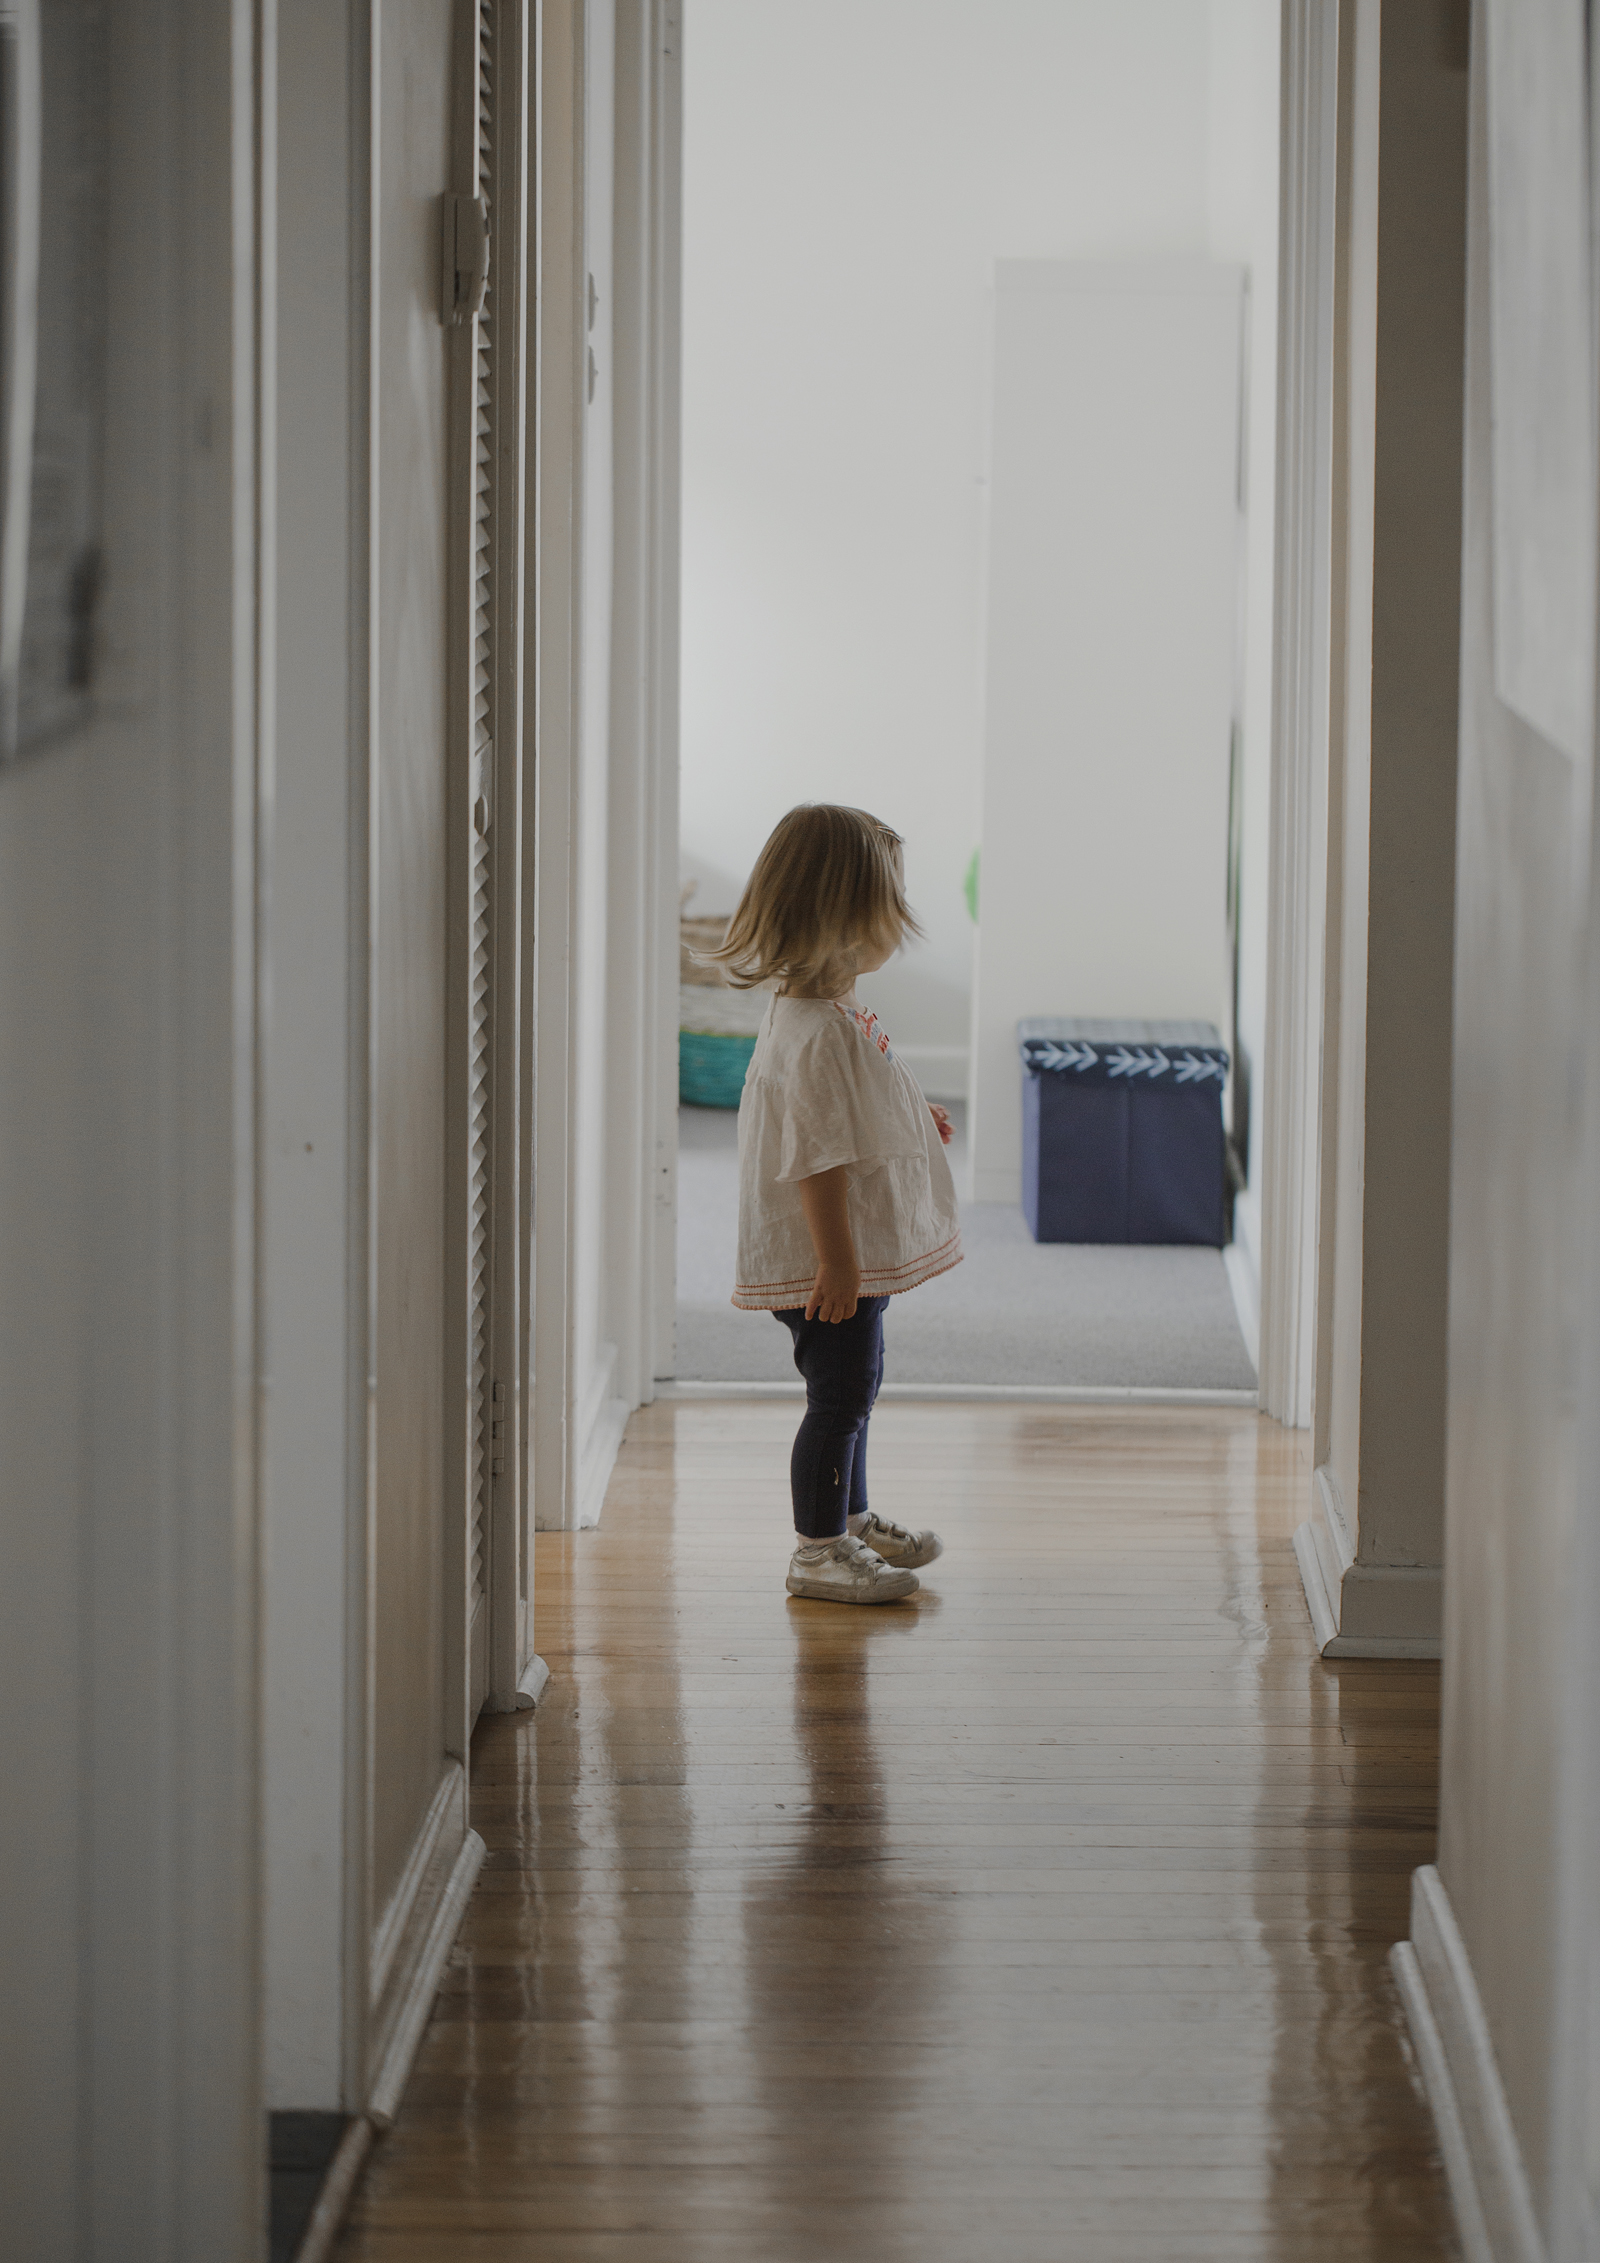 Toddler waiting to go outside and play